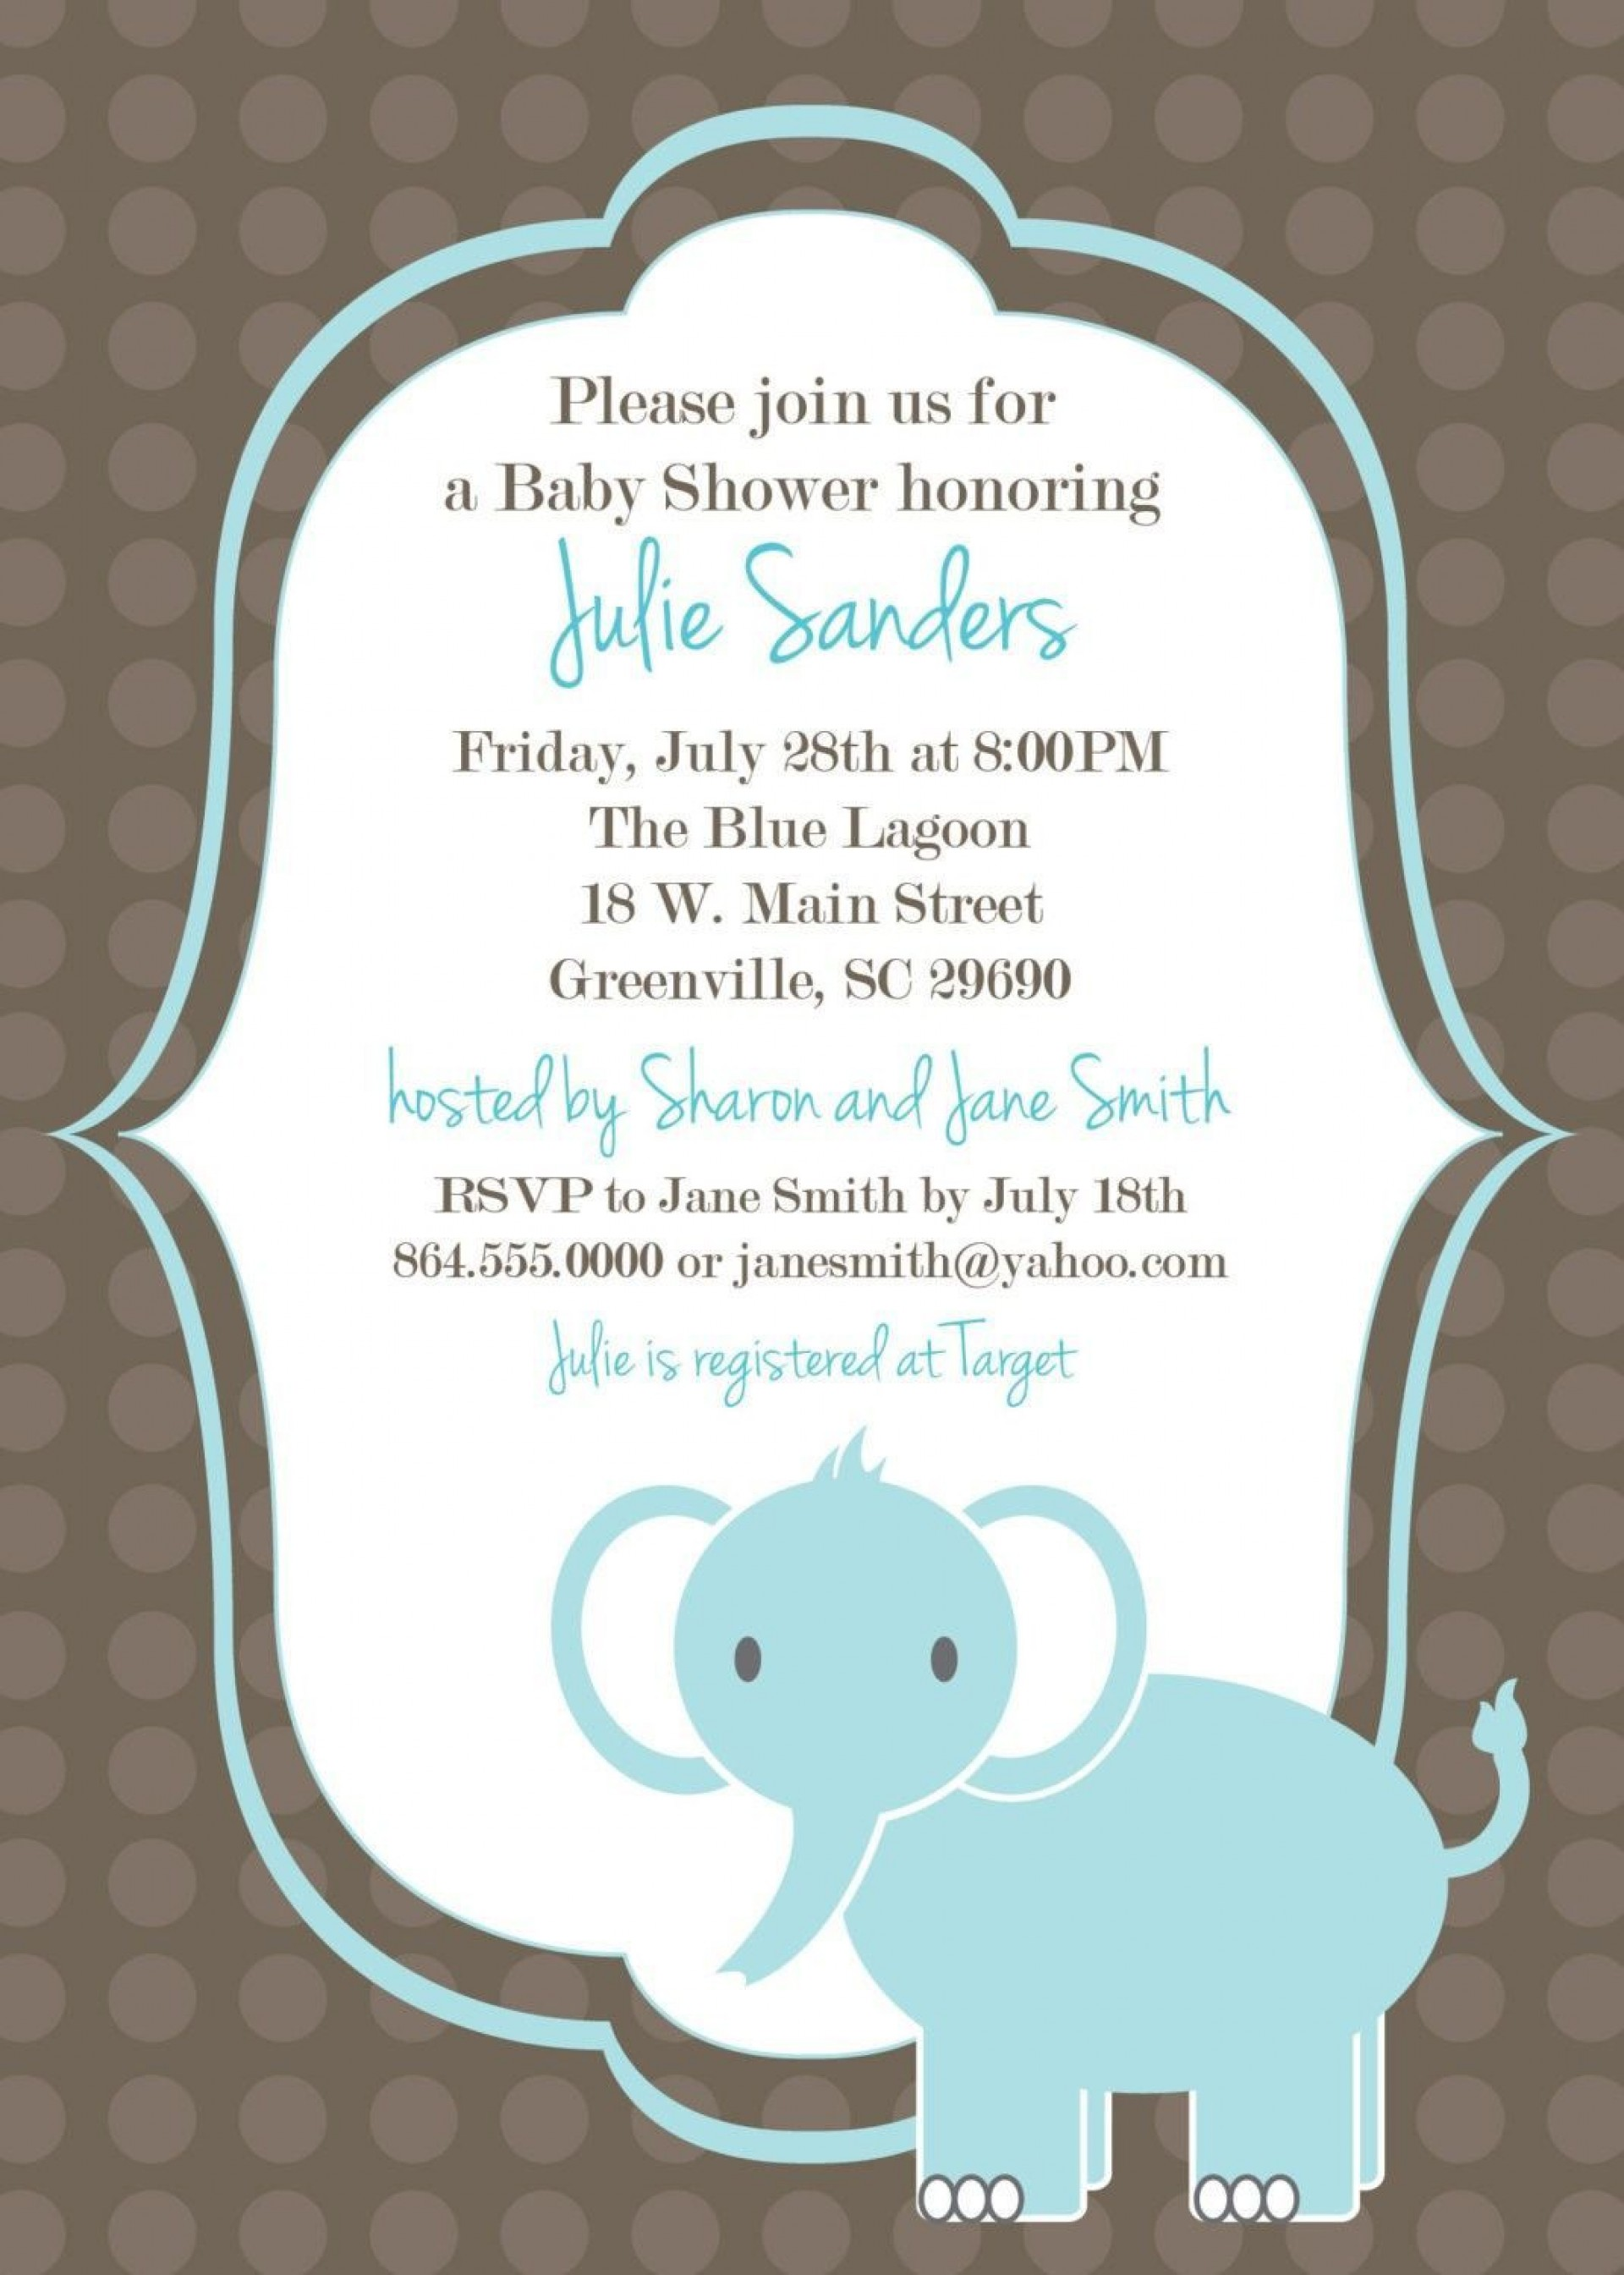 006 Unusual Free Baby Shower Invitation Template For Boy High Def 1920